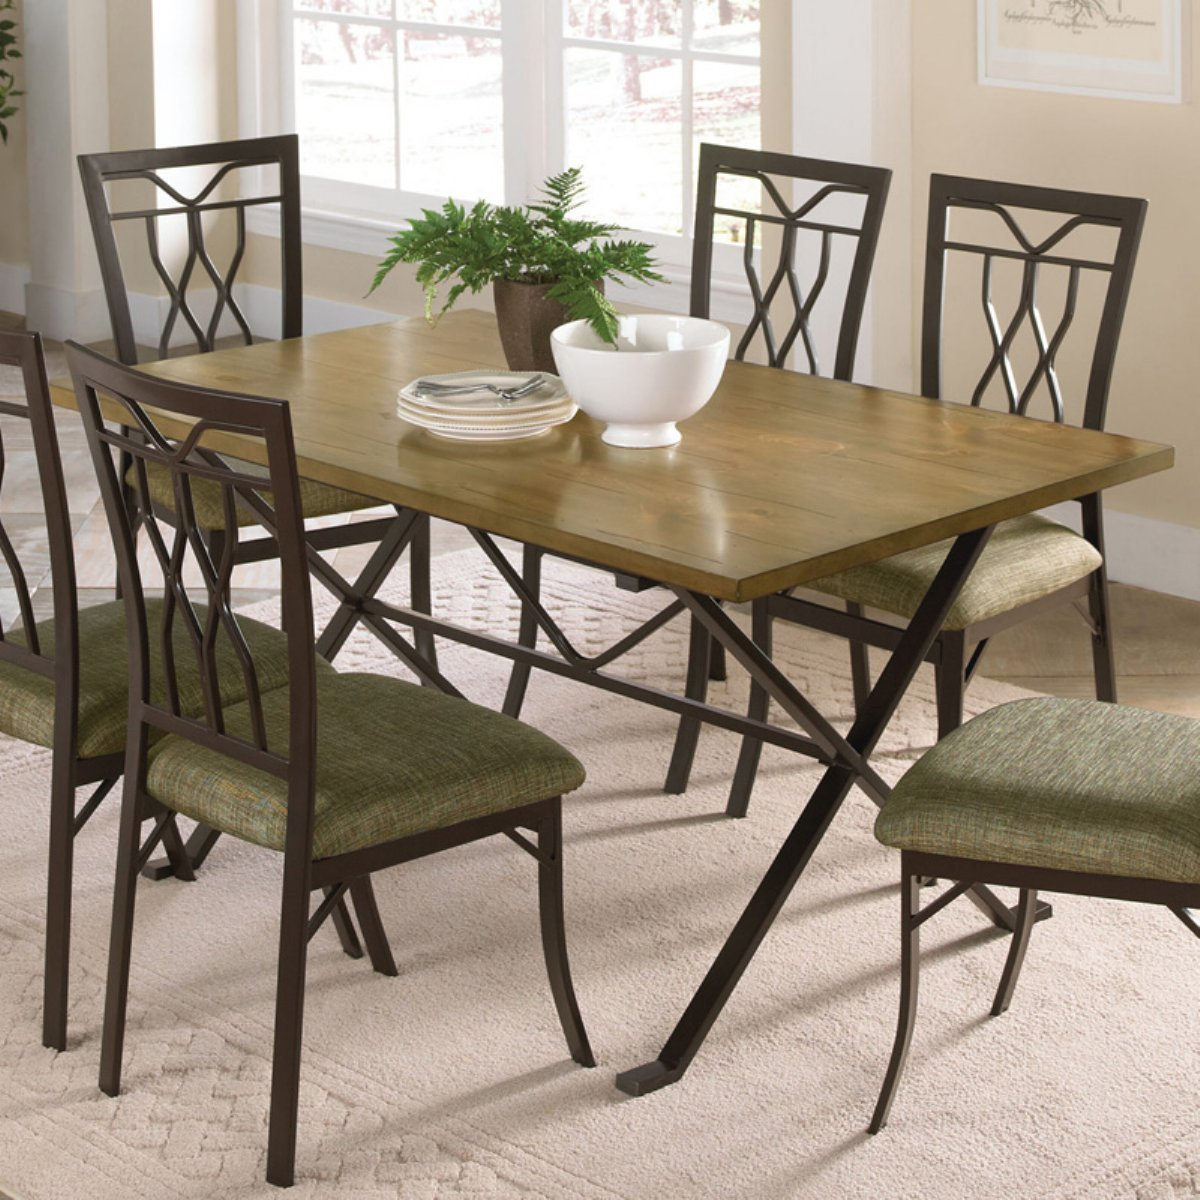 small dining room chairs black lifetime chair covers the rectangular table that is perfect for